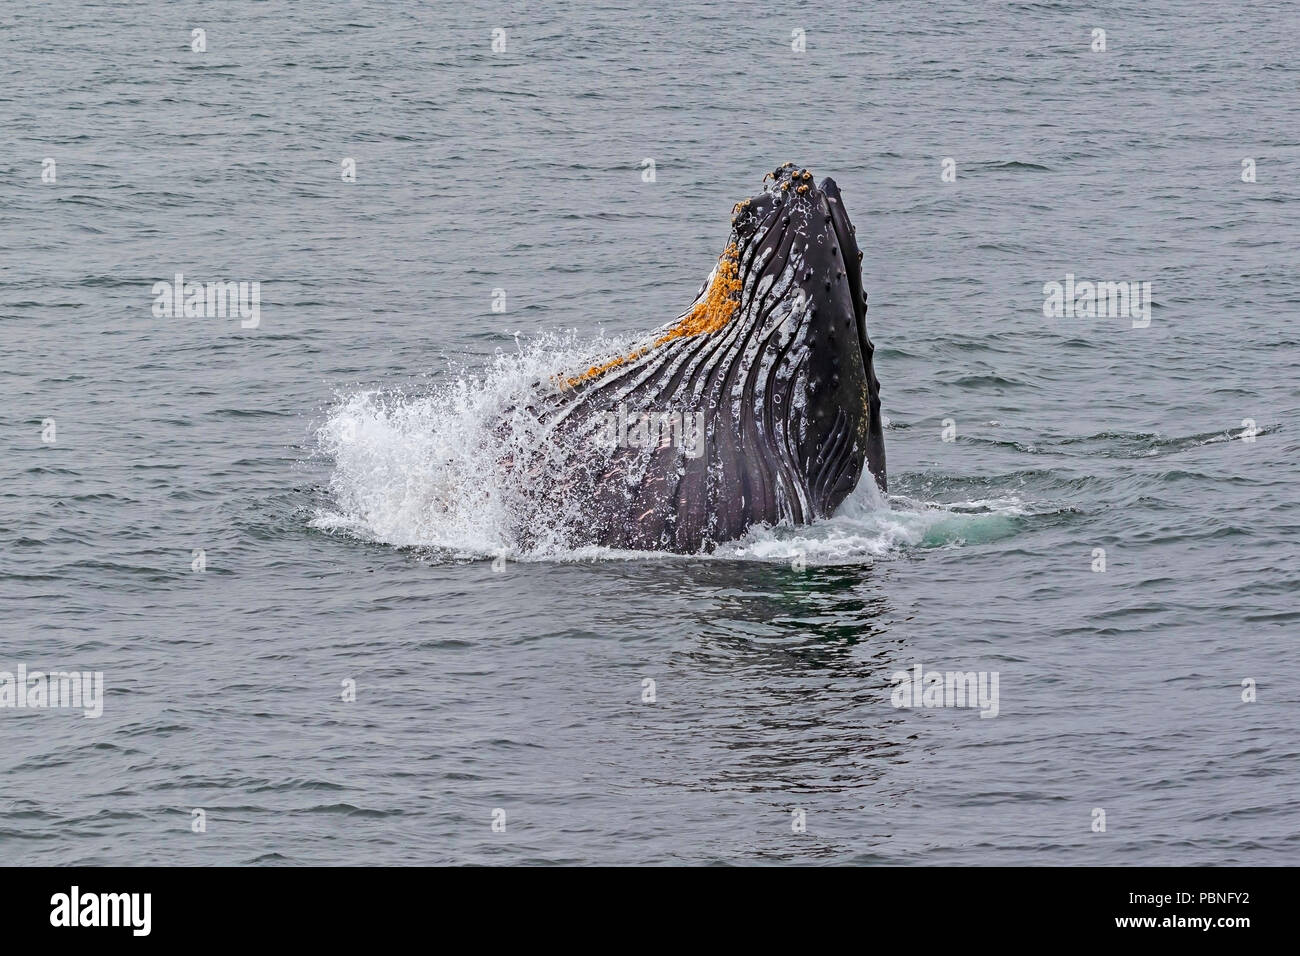 Humpback whale feeding in Monterey Bay - Stock Image